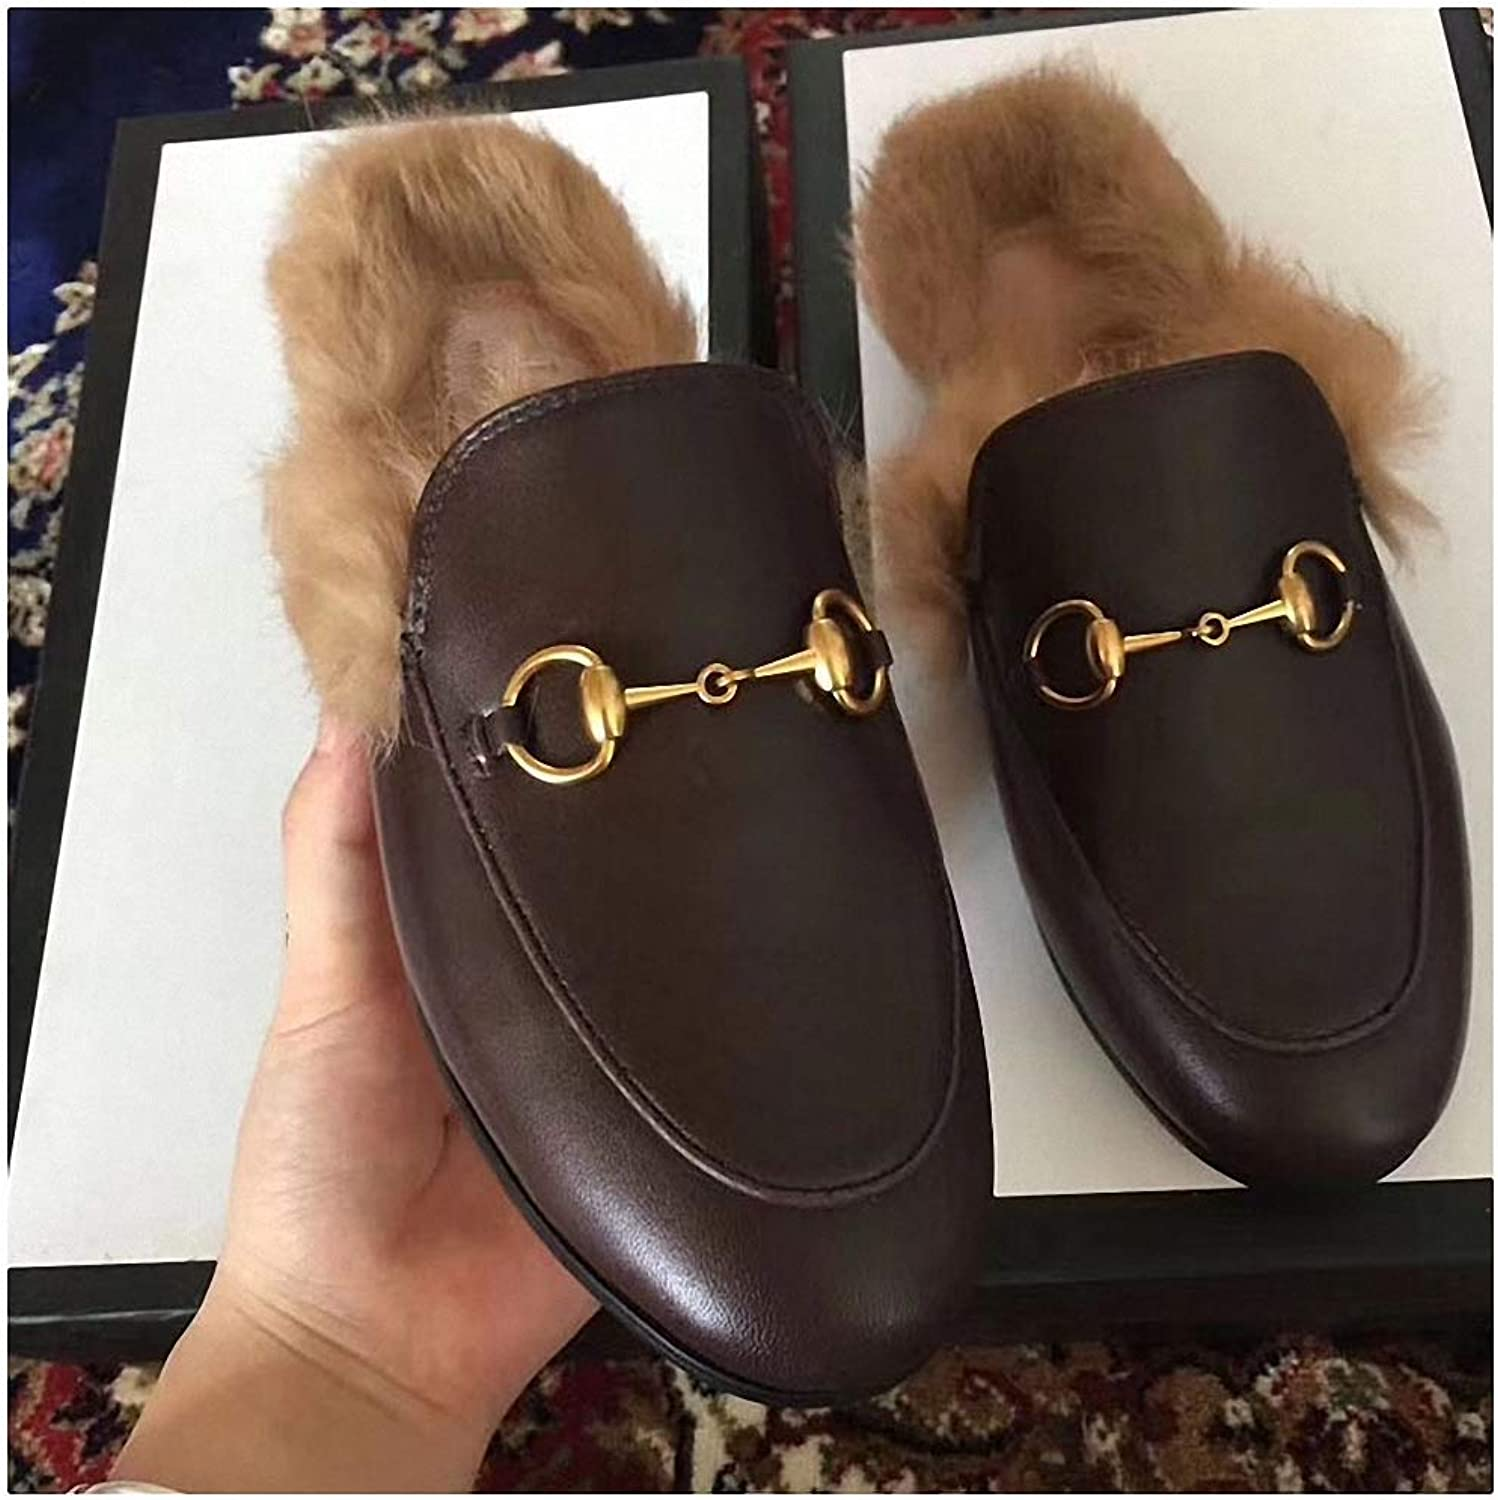 Womens Slippers Women Real Fur Slippers Ladies Summer Casual shoes Mules shoes Outside Slippers Low Heels Female Footwear Slides